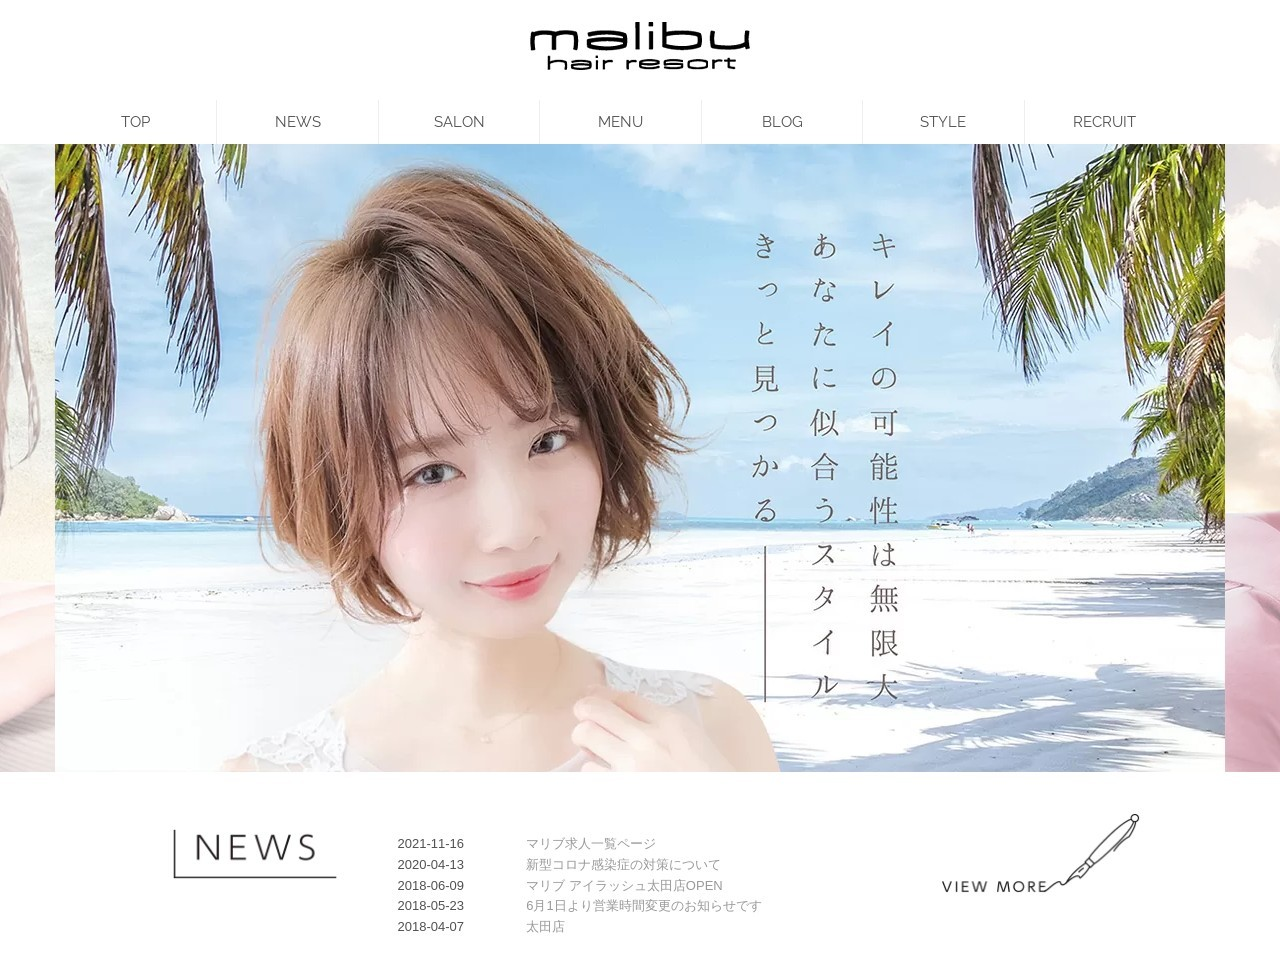 malibu hair resort 伊勢崎本店